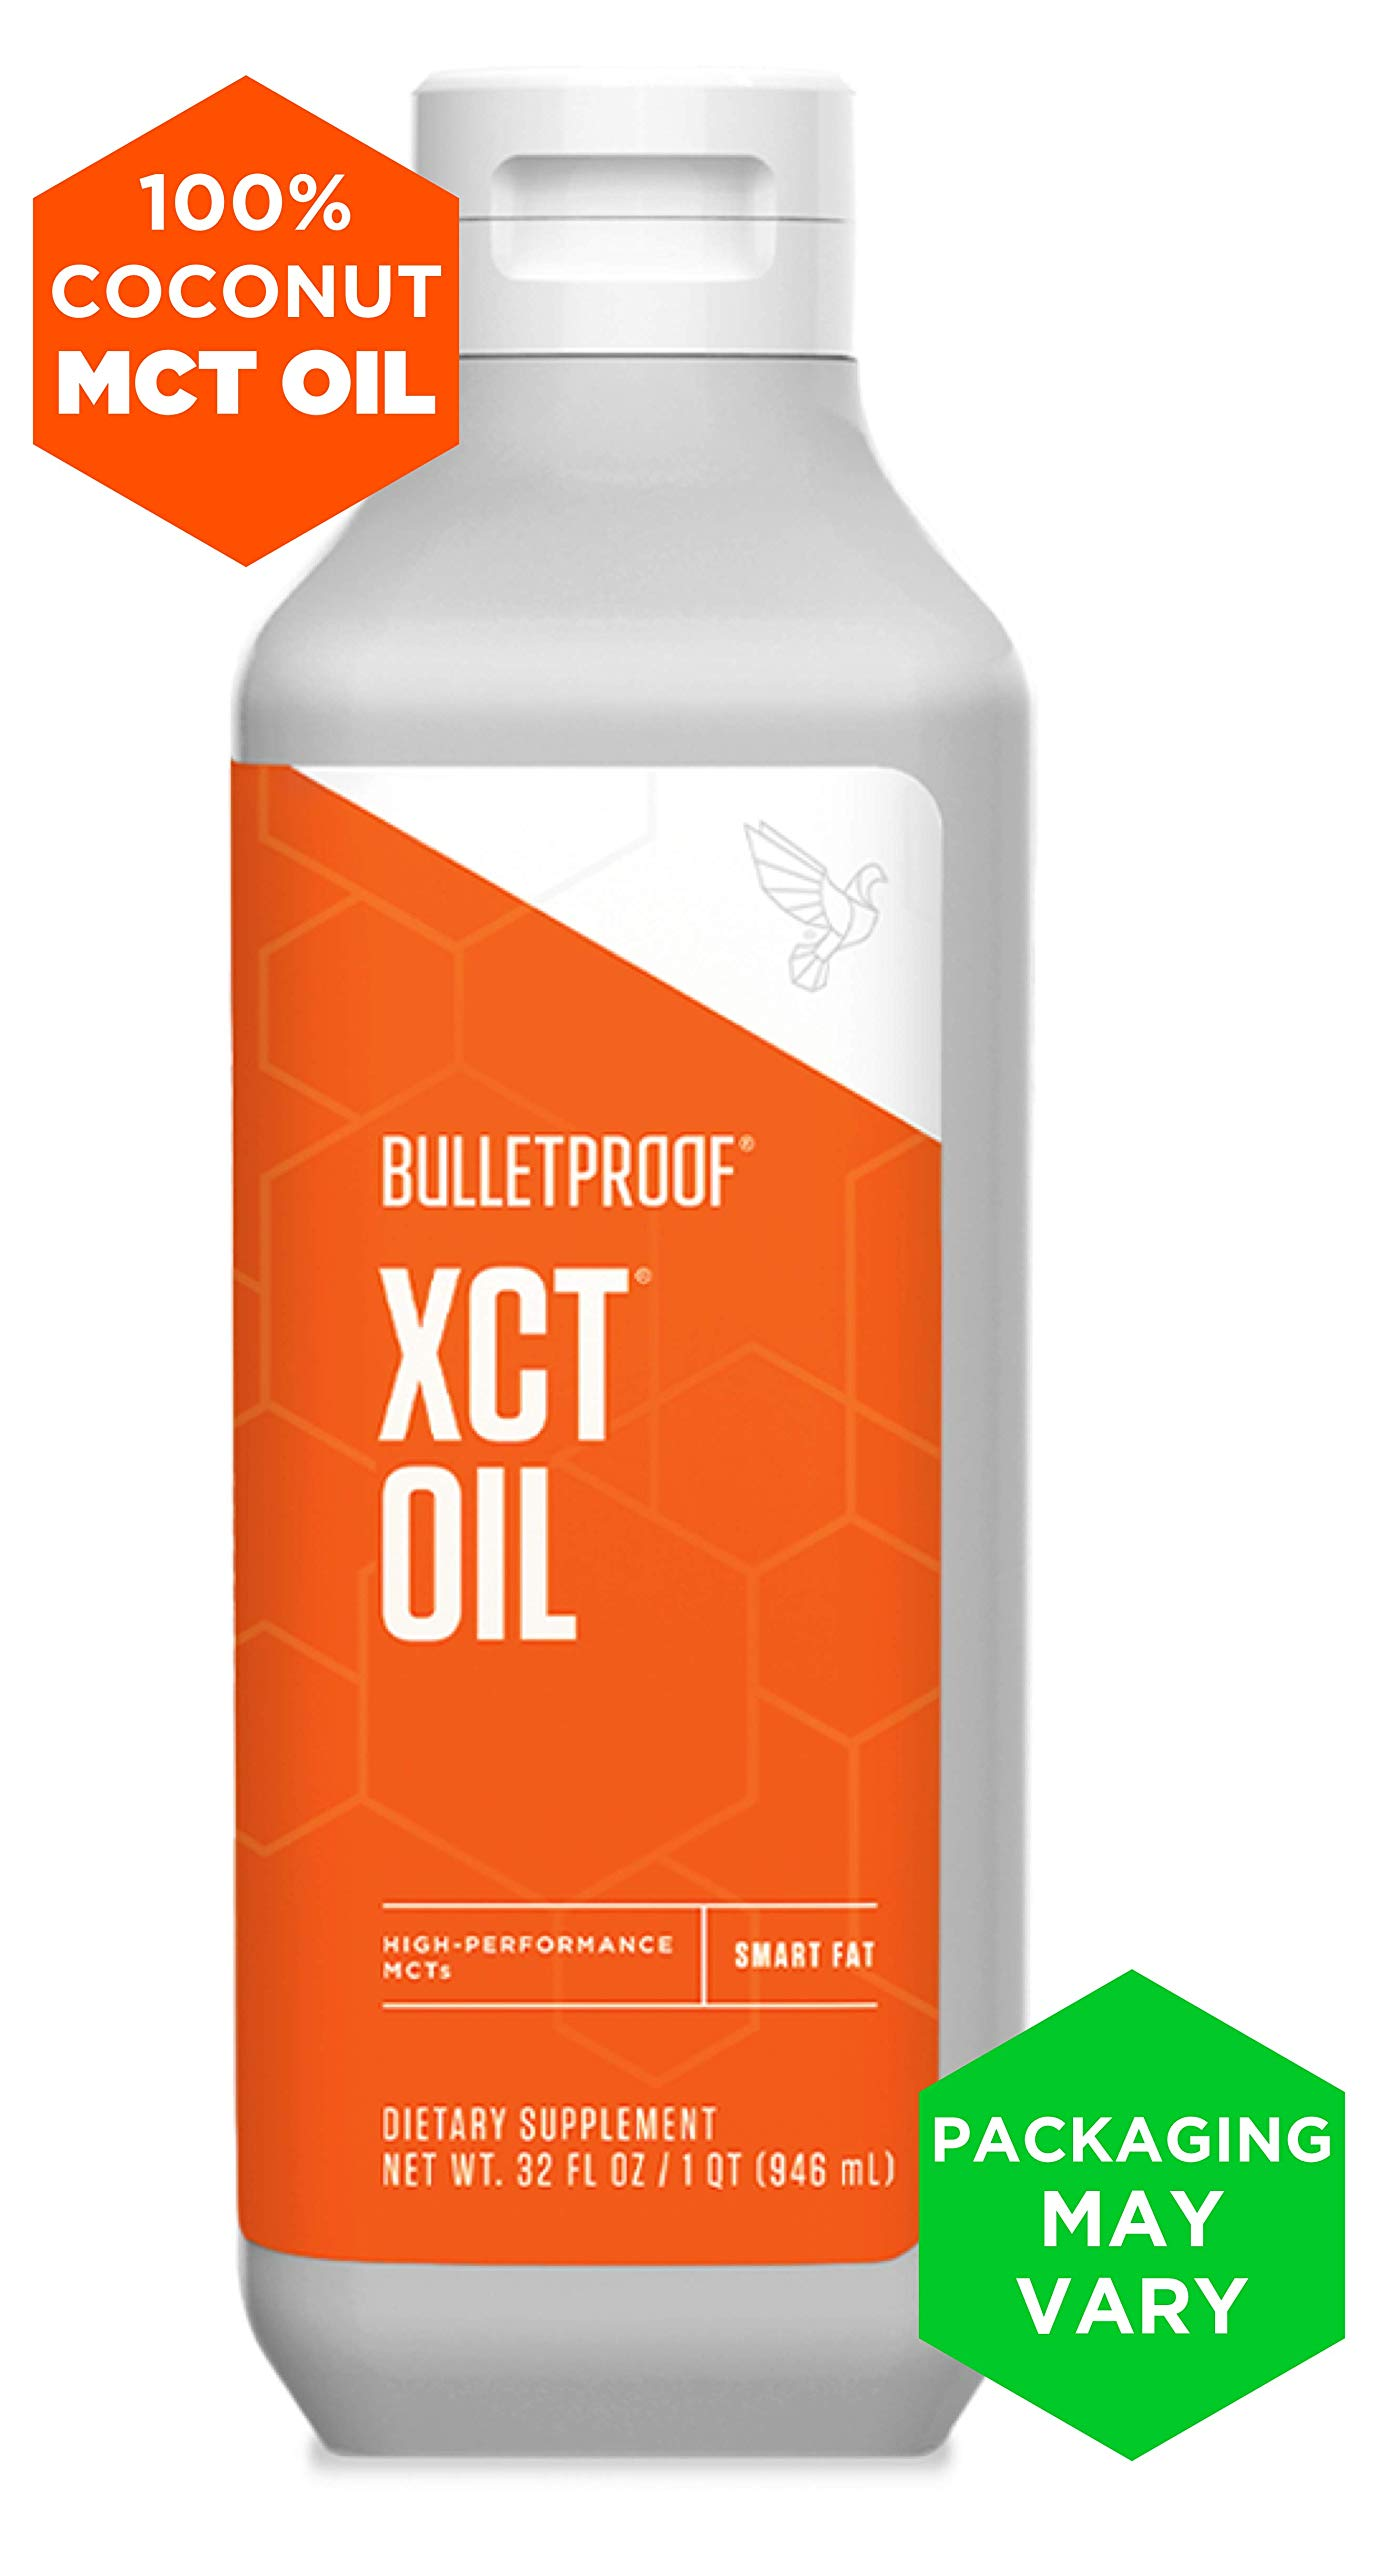 Bulletproof XCT Oil, Perfect for Keto and Paleo Diet, 100% Non-GMO Premium C8 C10 MCT Oil, Ketogenic Friendly, Responsibly Sourced from Coconuts Only, Made in The USA (32 oz)